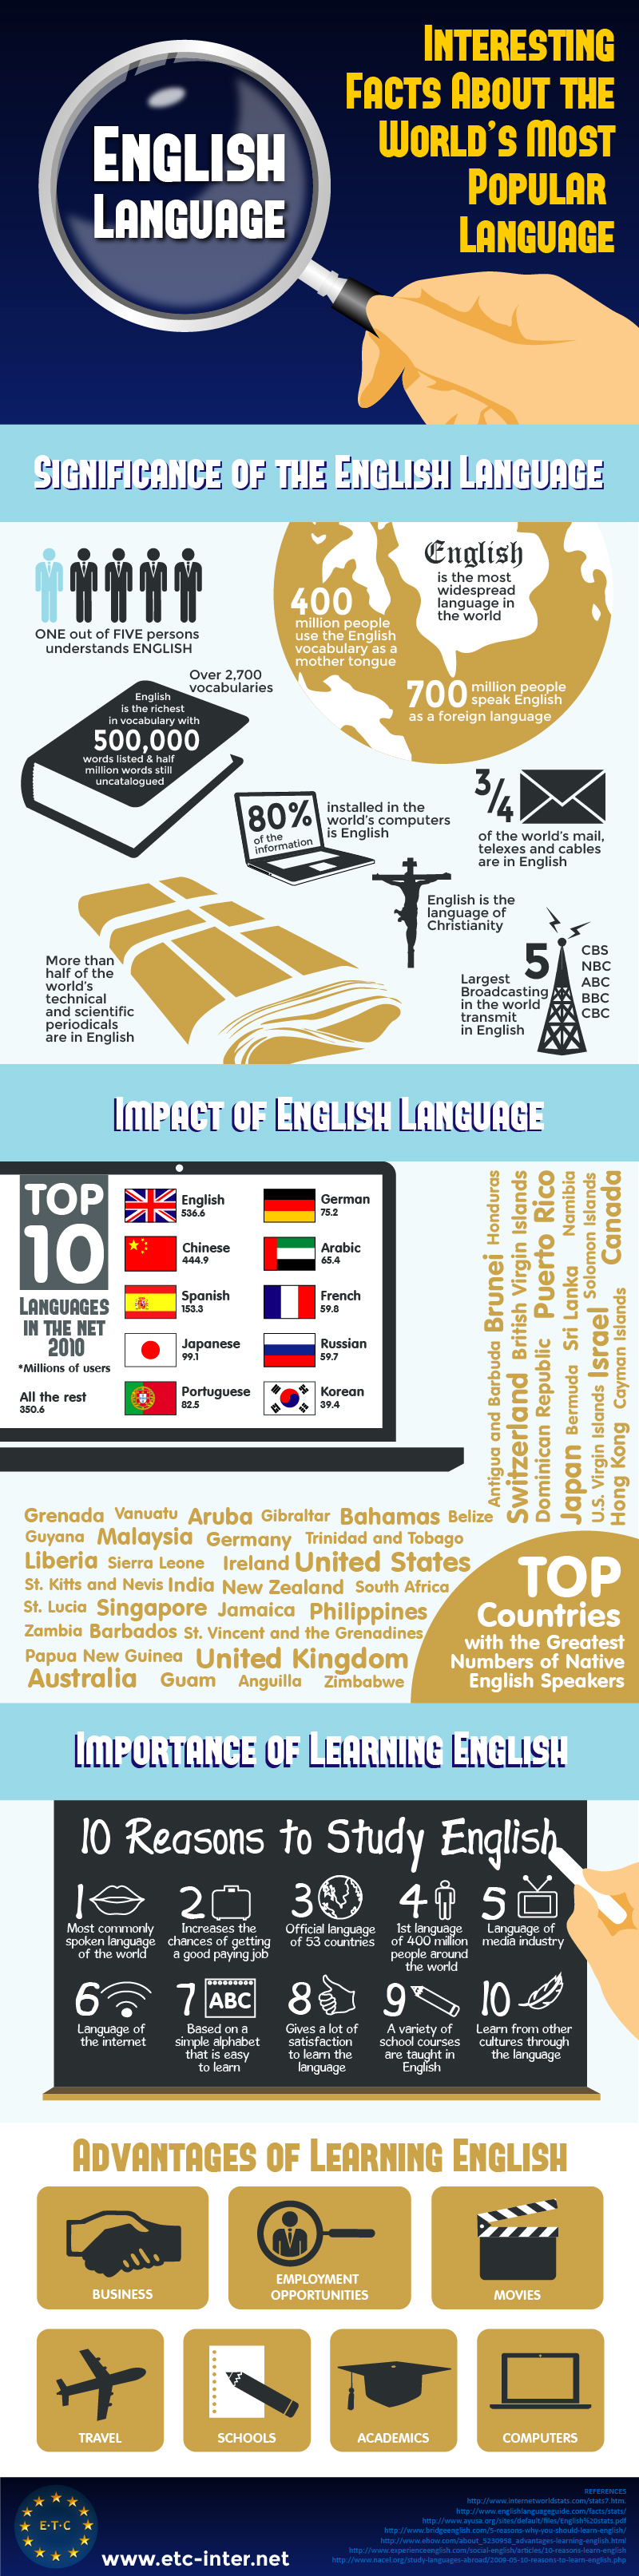 Infographic  Language Interesting Facts About The World s Most Popular  Language. English Language Interesting Facts About The World s Most Popular